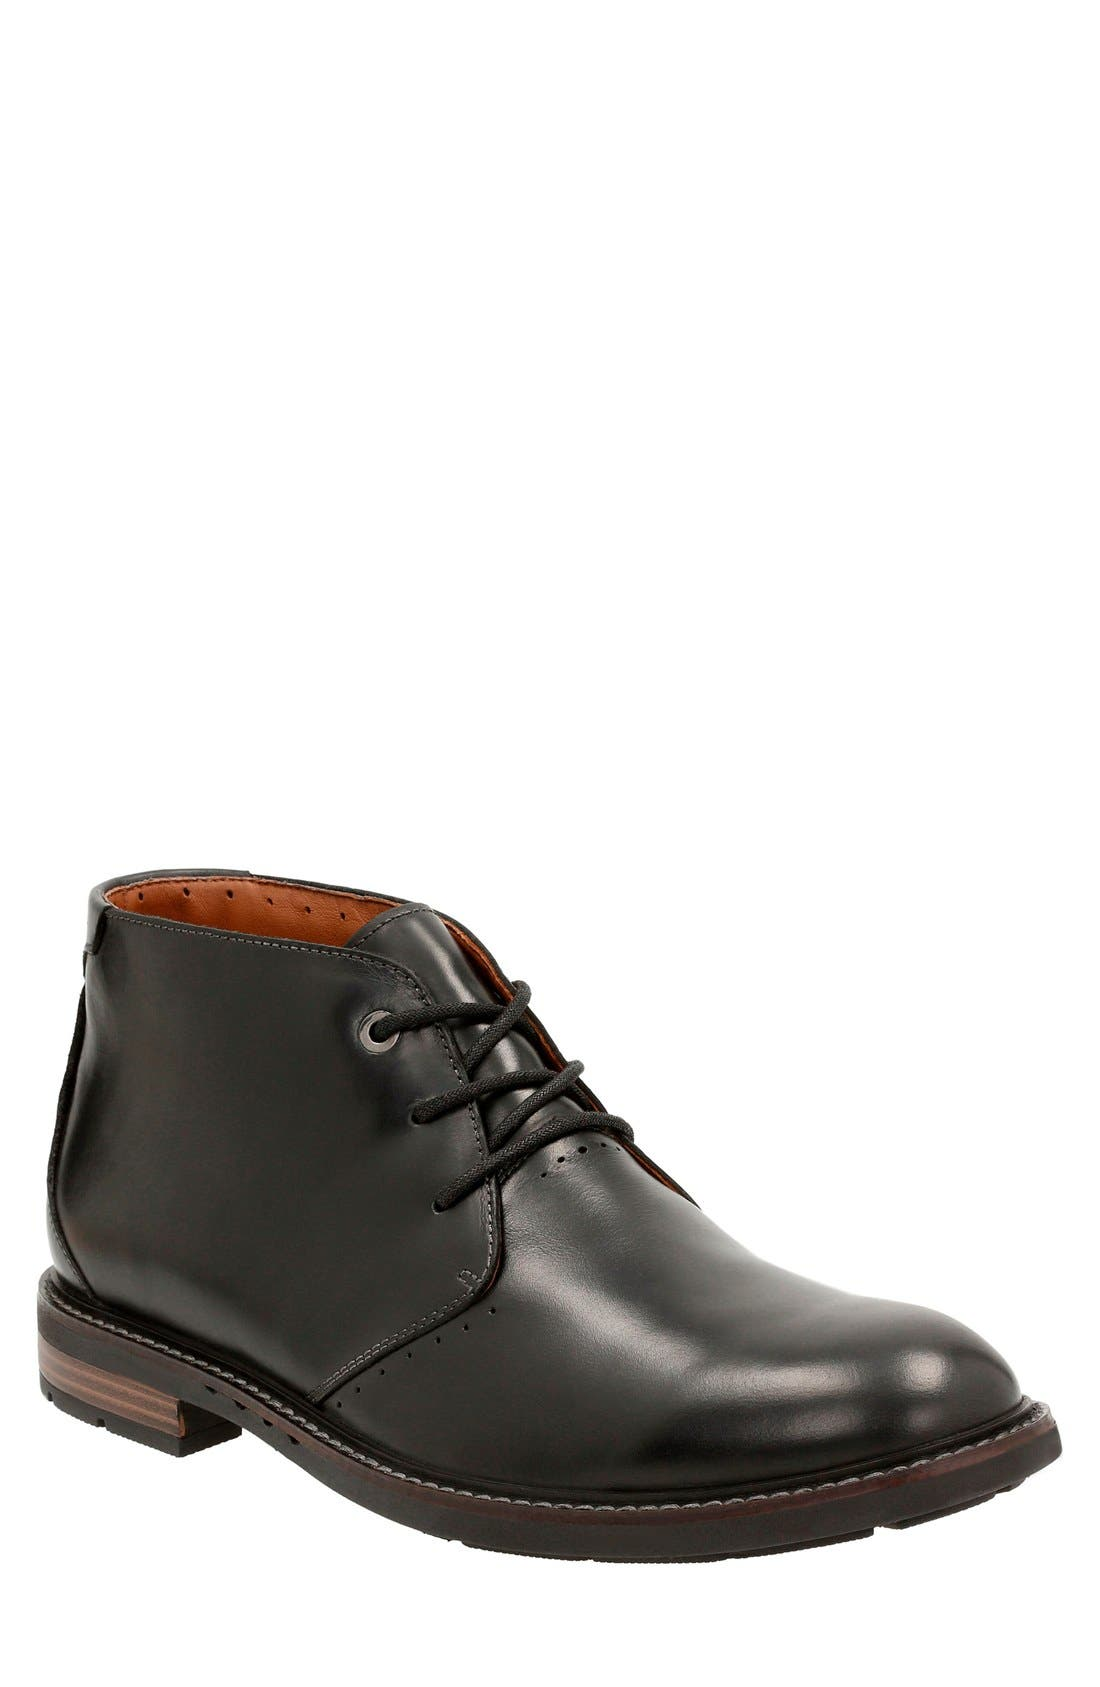 Main Image - Clarks® 'Unstructured - Elliott' Chukka Boot (Men)